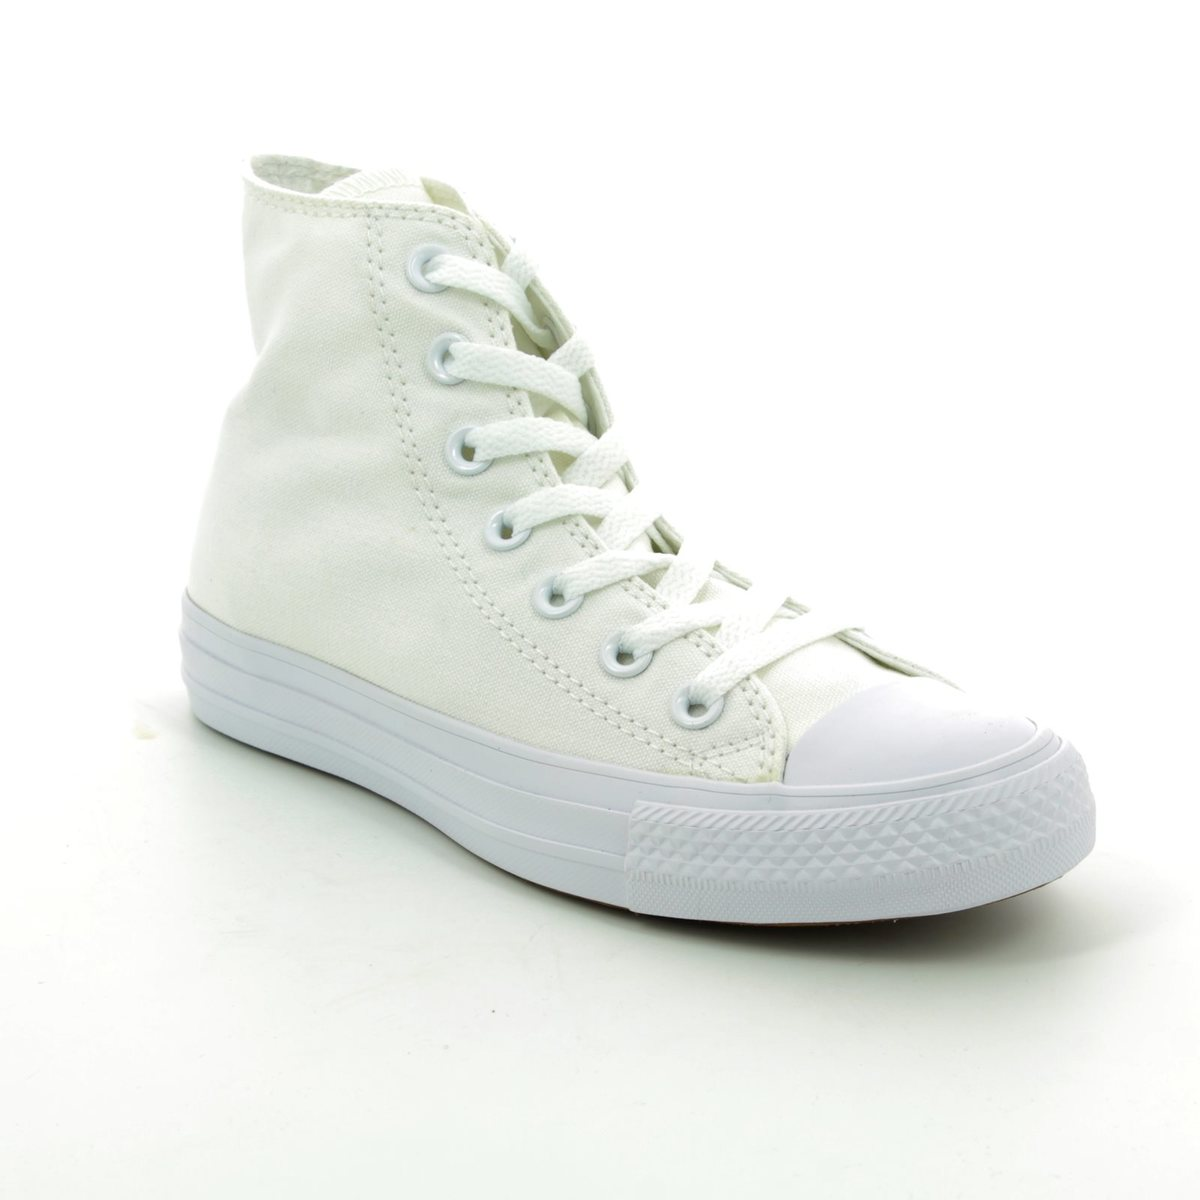 koko perheelle Alin hinta halpa 1u646c Chuck Taylor All Star Hi Top Monochrome at Begg Shoes & Bags